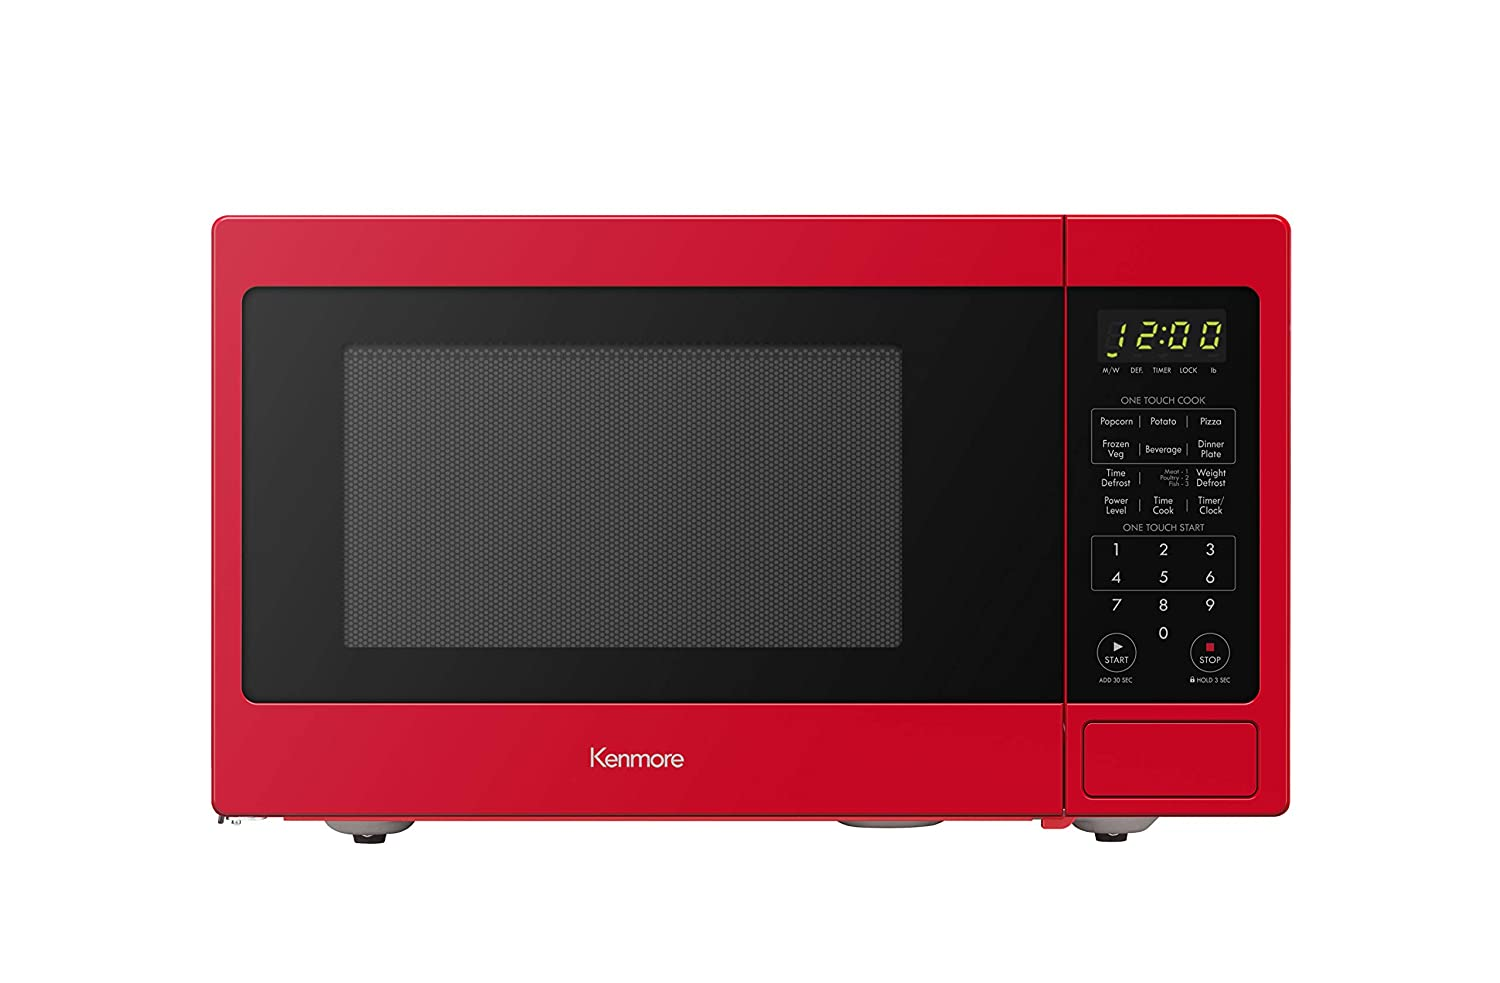 Amazon.com: Kenmore 70929 0.9 cu. ft Countertop Microwave ...